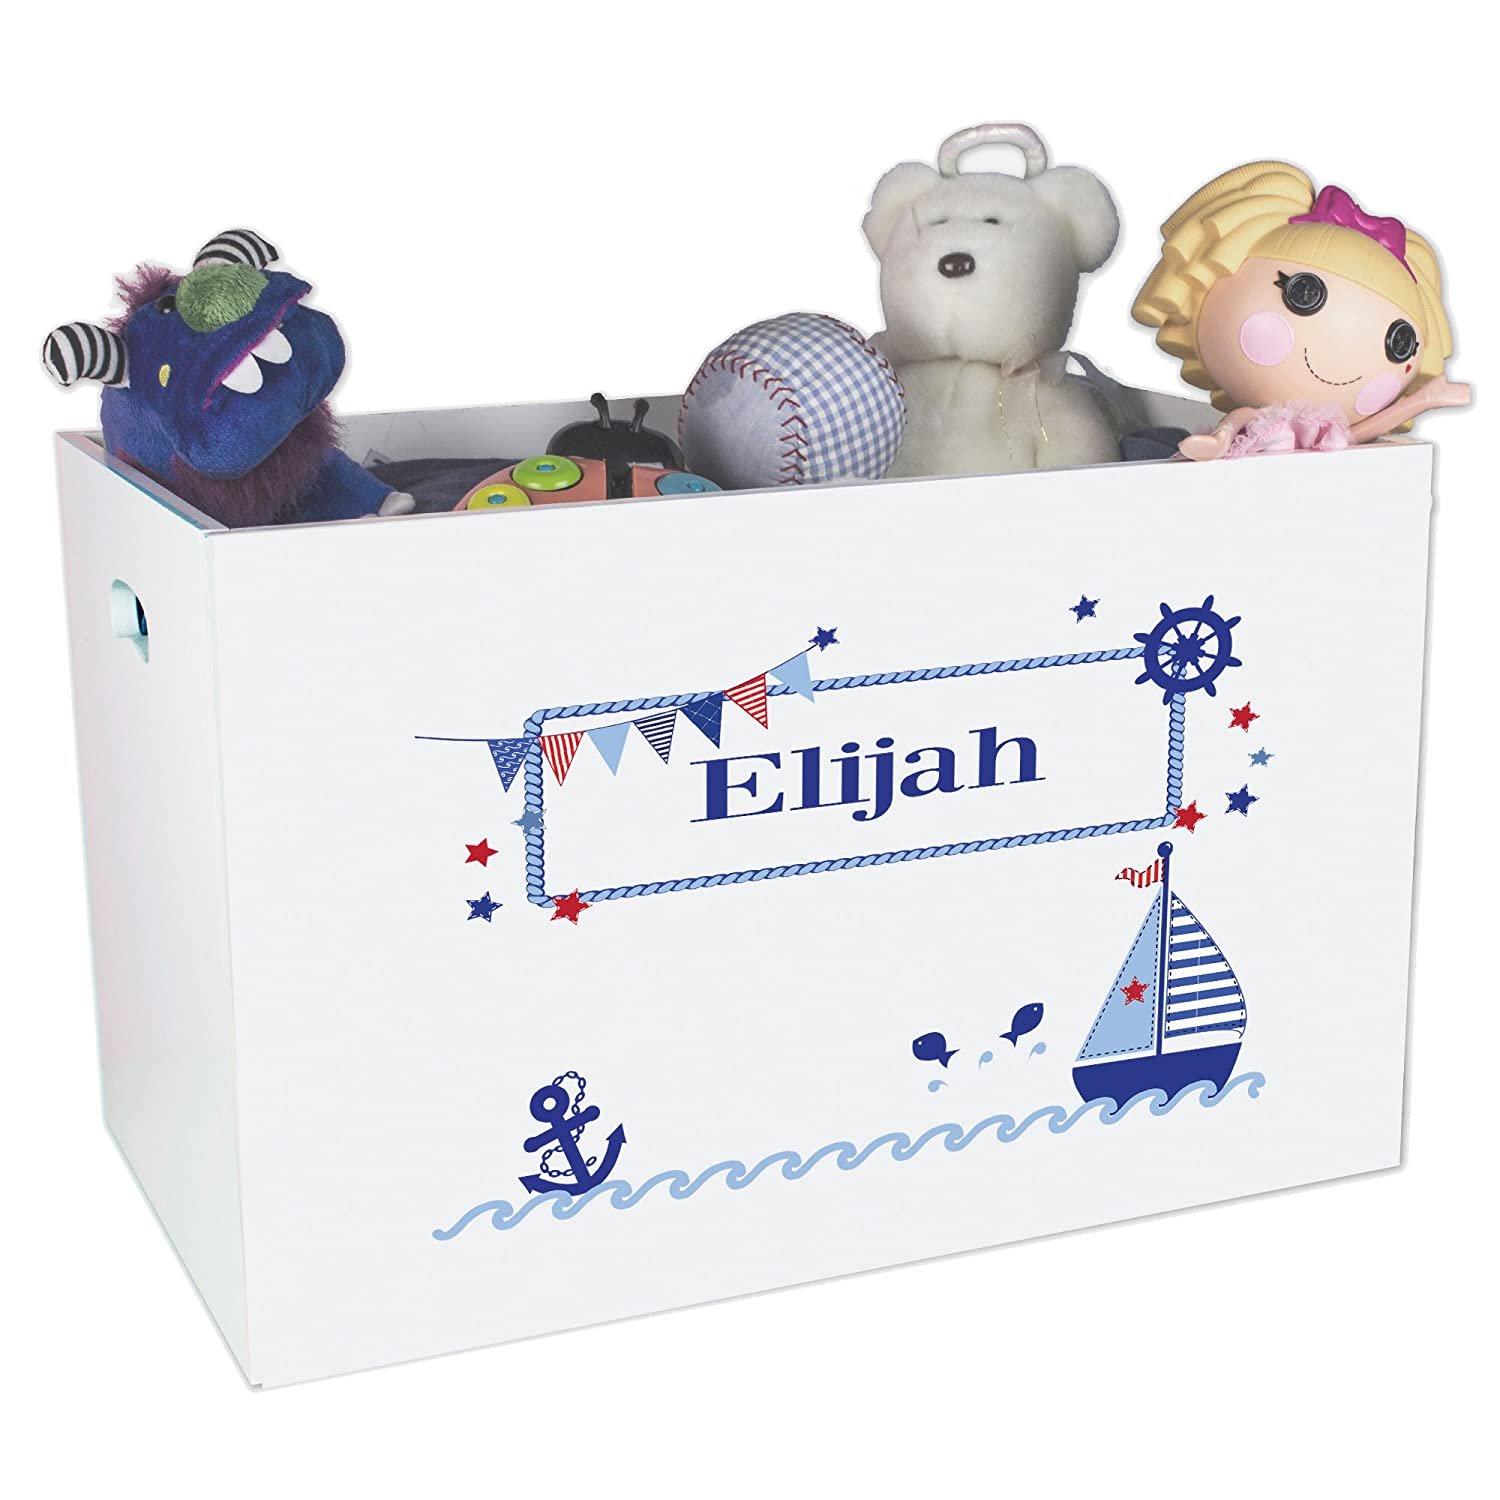 Personalized Sailboat Childrens Nursery White Open Toy Box MyBambino ybin-201